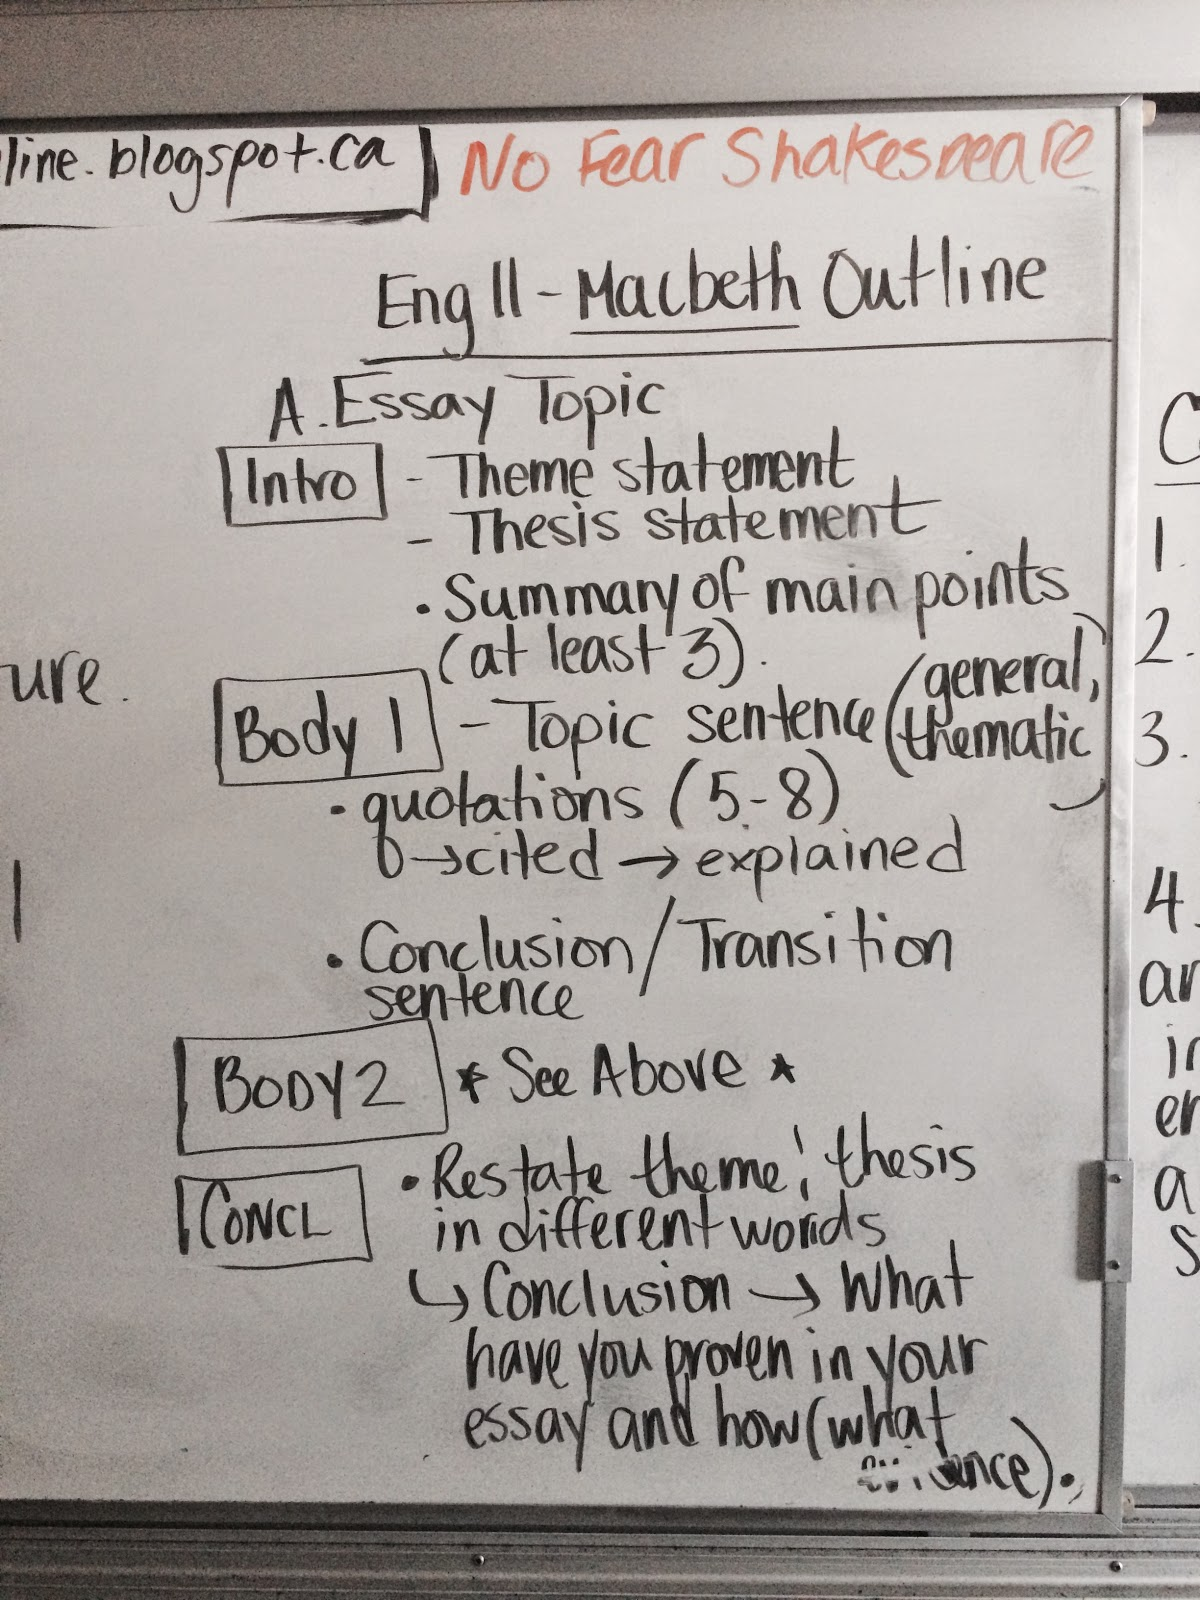 macpherson online 2015 answer questions due monday 3 monday romeo and juliet test multiple choice